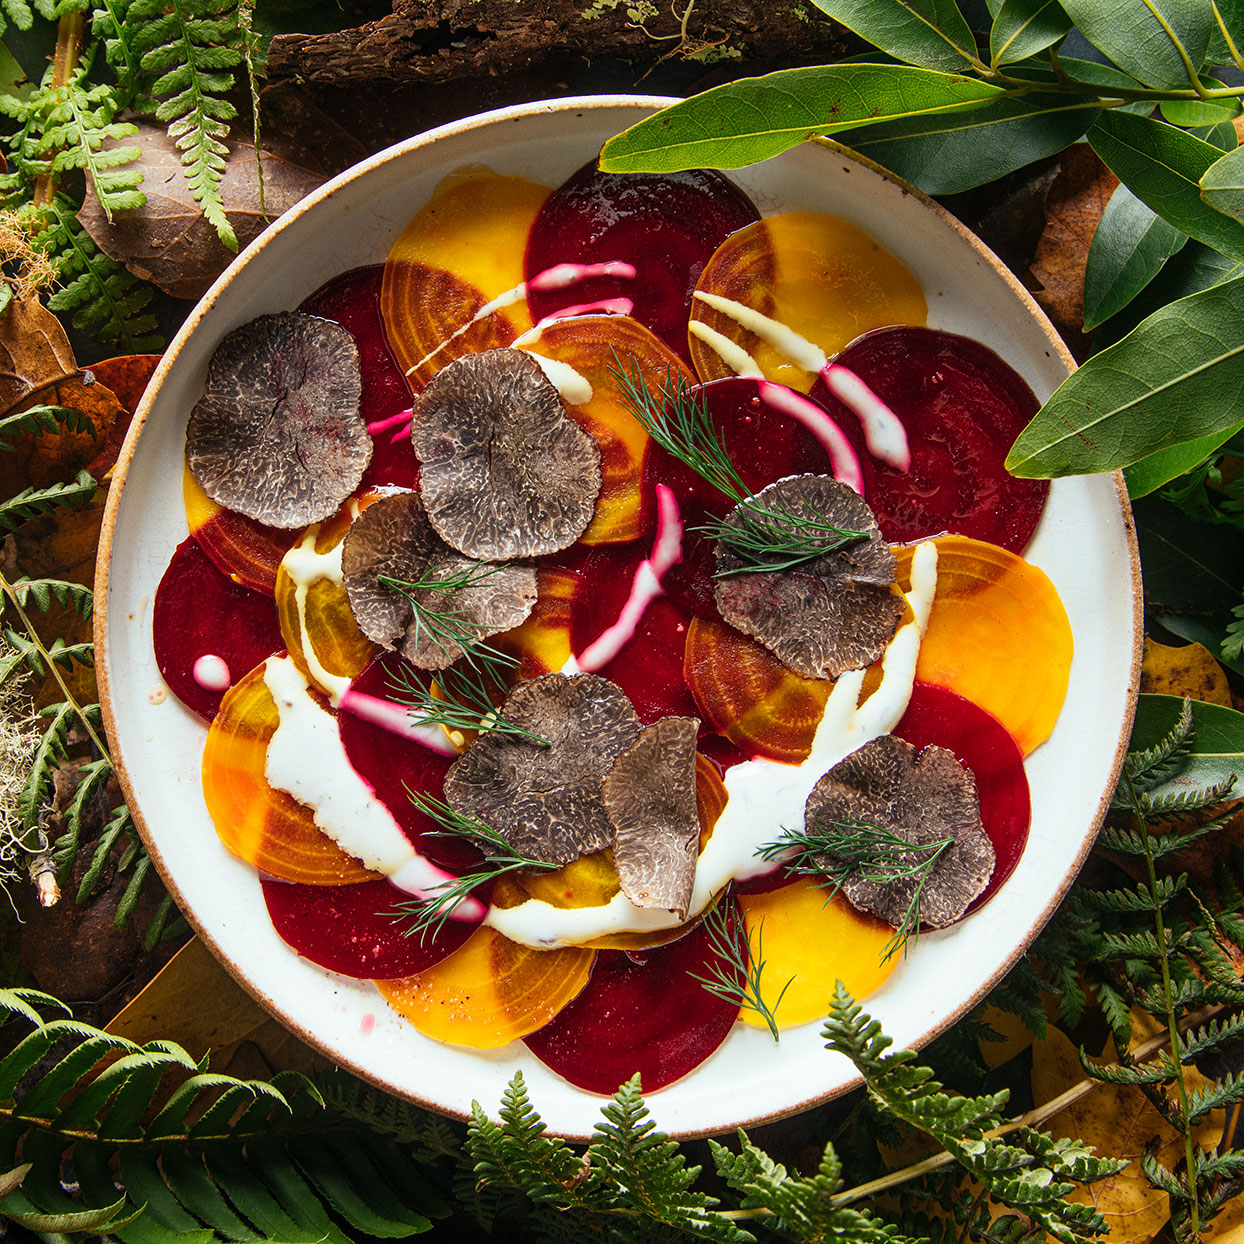 Put a vegetarian spin on this classic Italian dish. Thin slices of beet, glossy with olive oil, make this salad look like beef carpaccio, especially if you use red beets. Source: EatingWell Magazine, April 2020